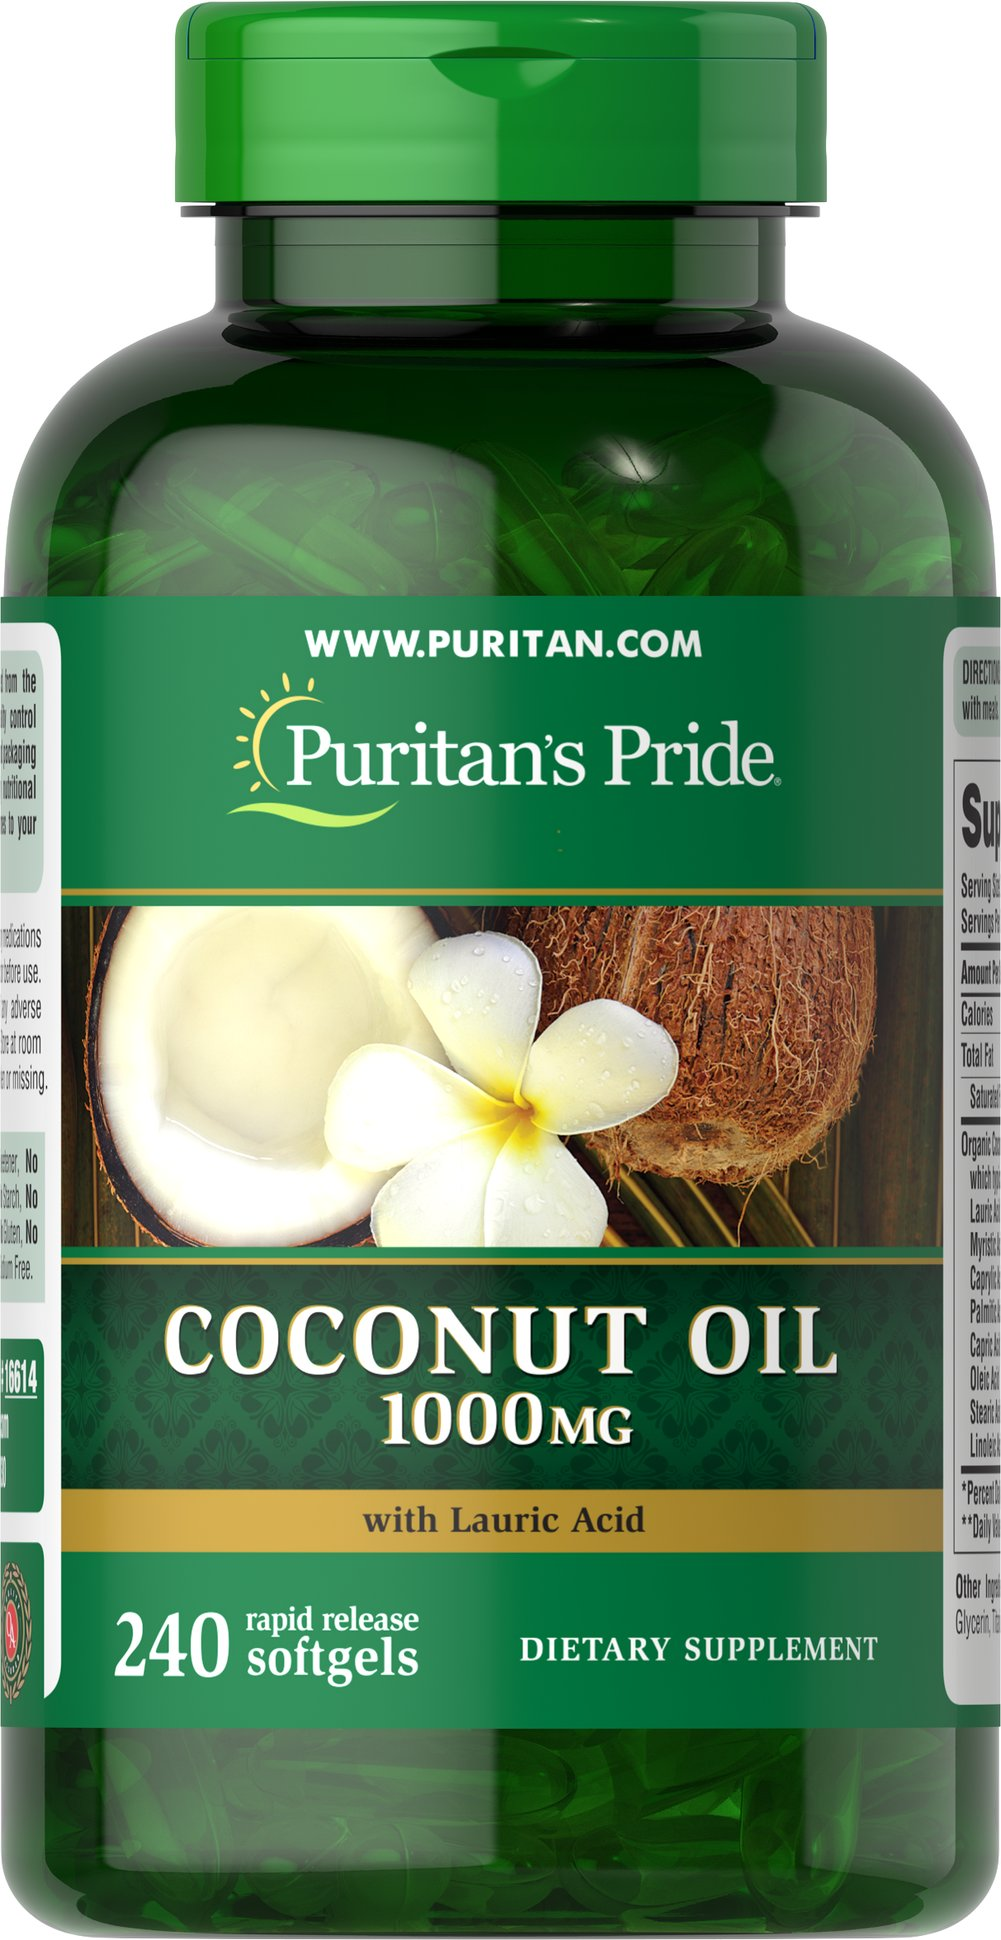 Coconut Oil 1000 mg <p>Coconuts are enjoyed in tropical regions around the world and now you can enjoy the benefits of Coconut Oil in a convenient softgel. Coconut Oil provides you with a natural energy source, and contains essential fatty acids and Medium Chain Triglycerides (MCTs). MCTs are oxidized differently in the body than other fats, making Coconut Oil a readily available energy source.** </p><p></p> 240 Softgels 1000 mg $37.99